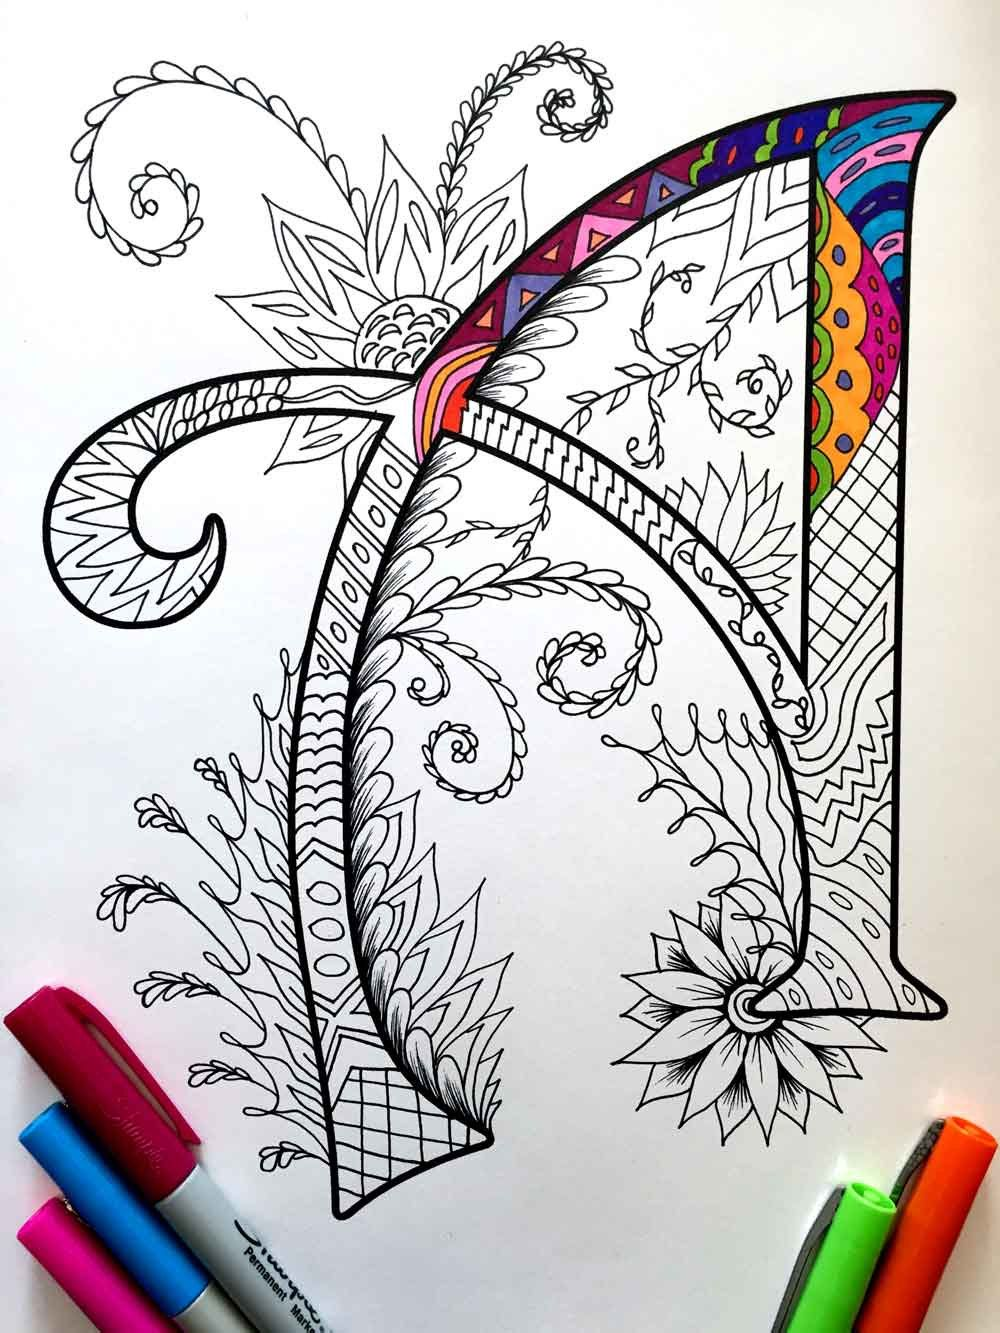 Letter A Zentangle Inspired By The Font Etsy Zentangle Art Coloring Pages Zentangle